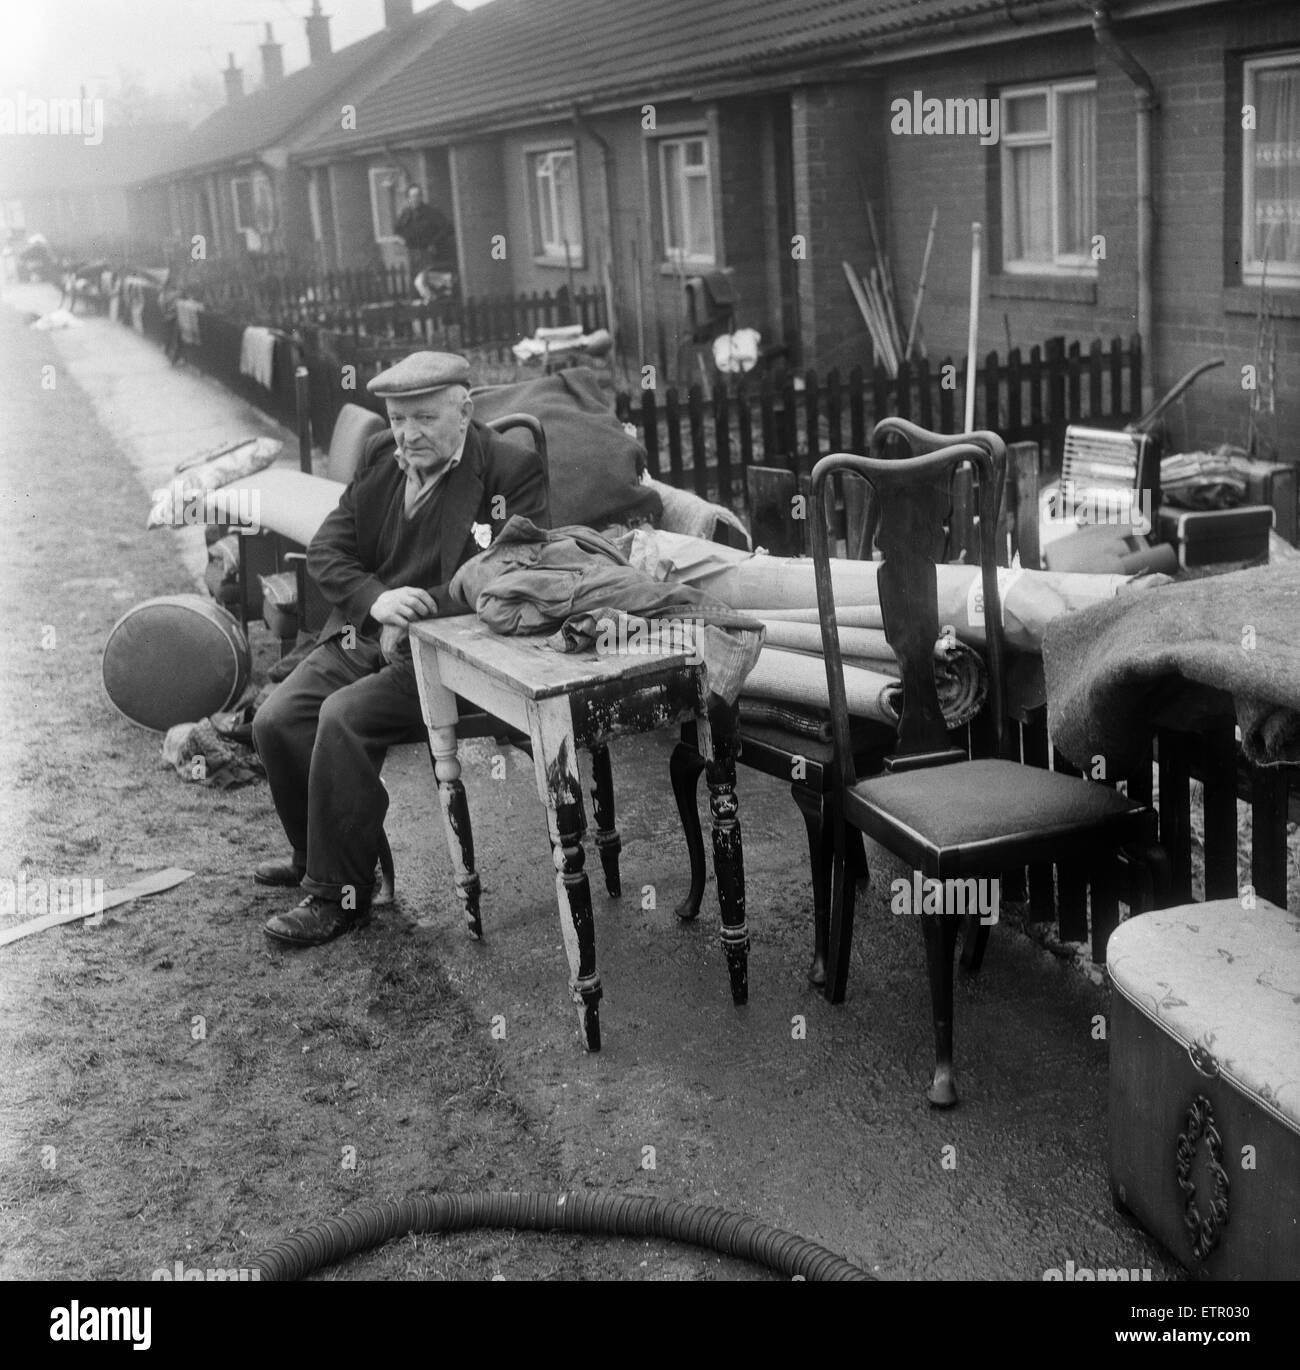 Aftermath of floods at Morpeth, Northumberland  in the northeast of England, 9th March 1963. - Stock Image